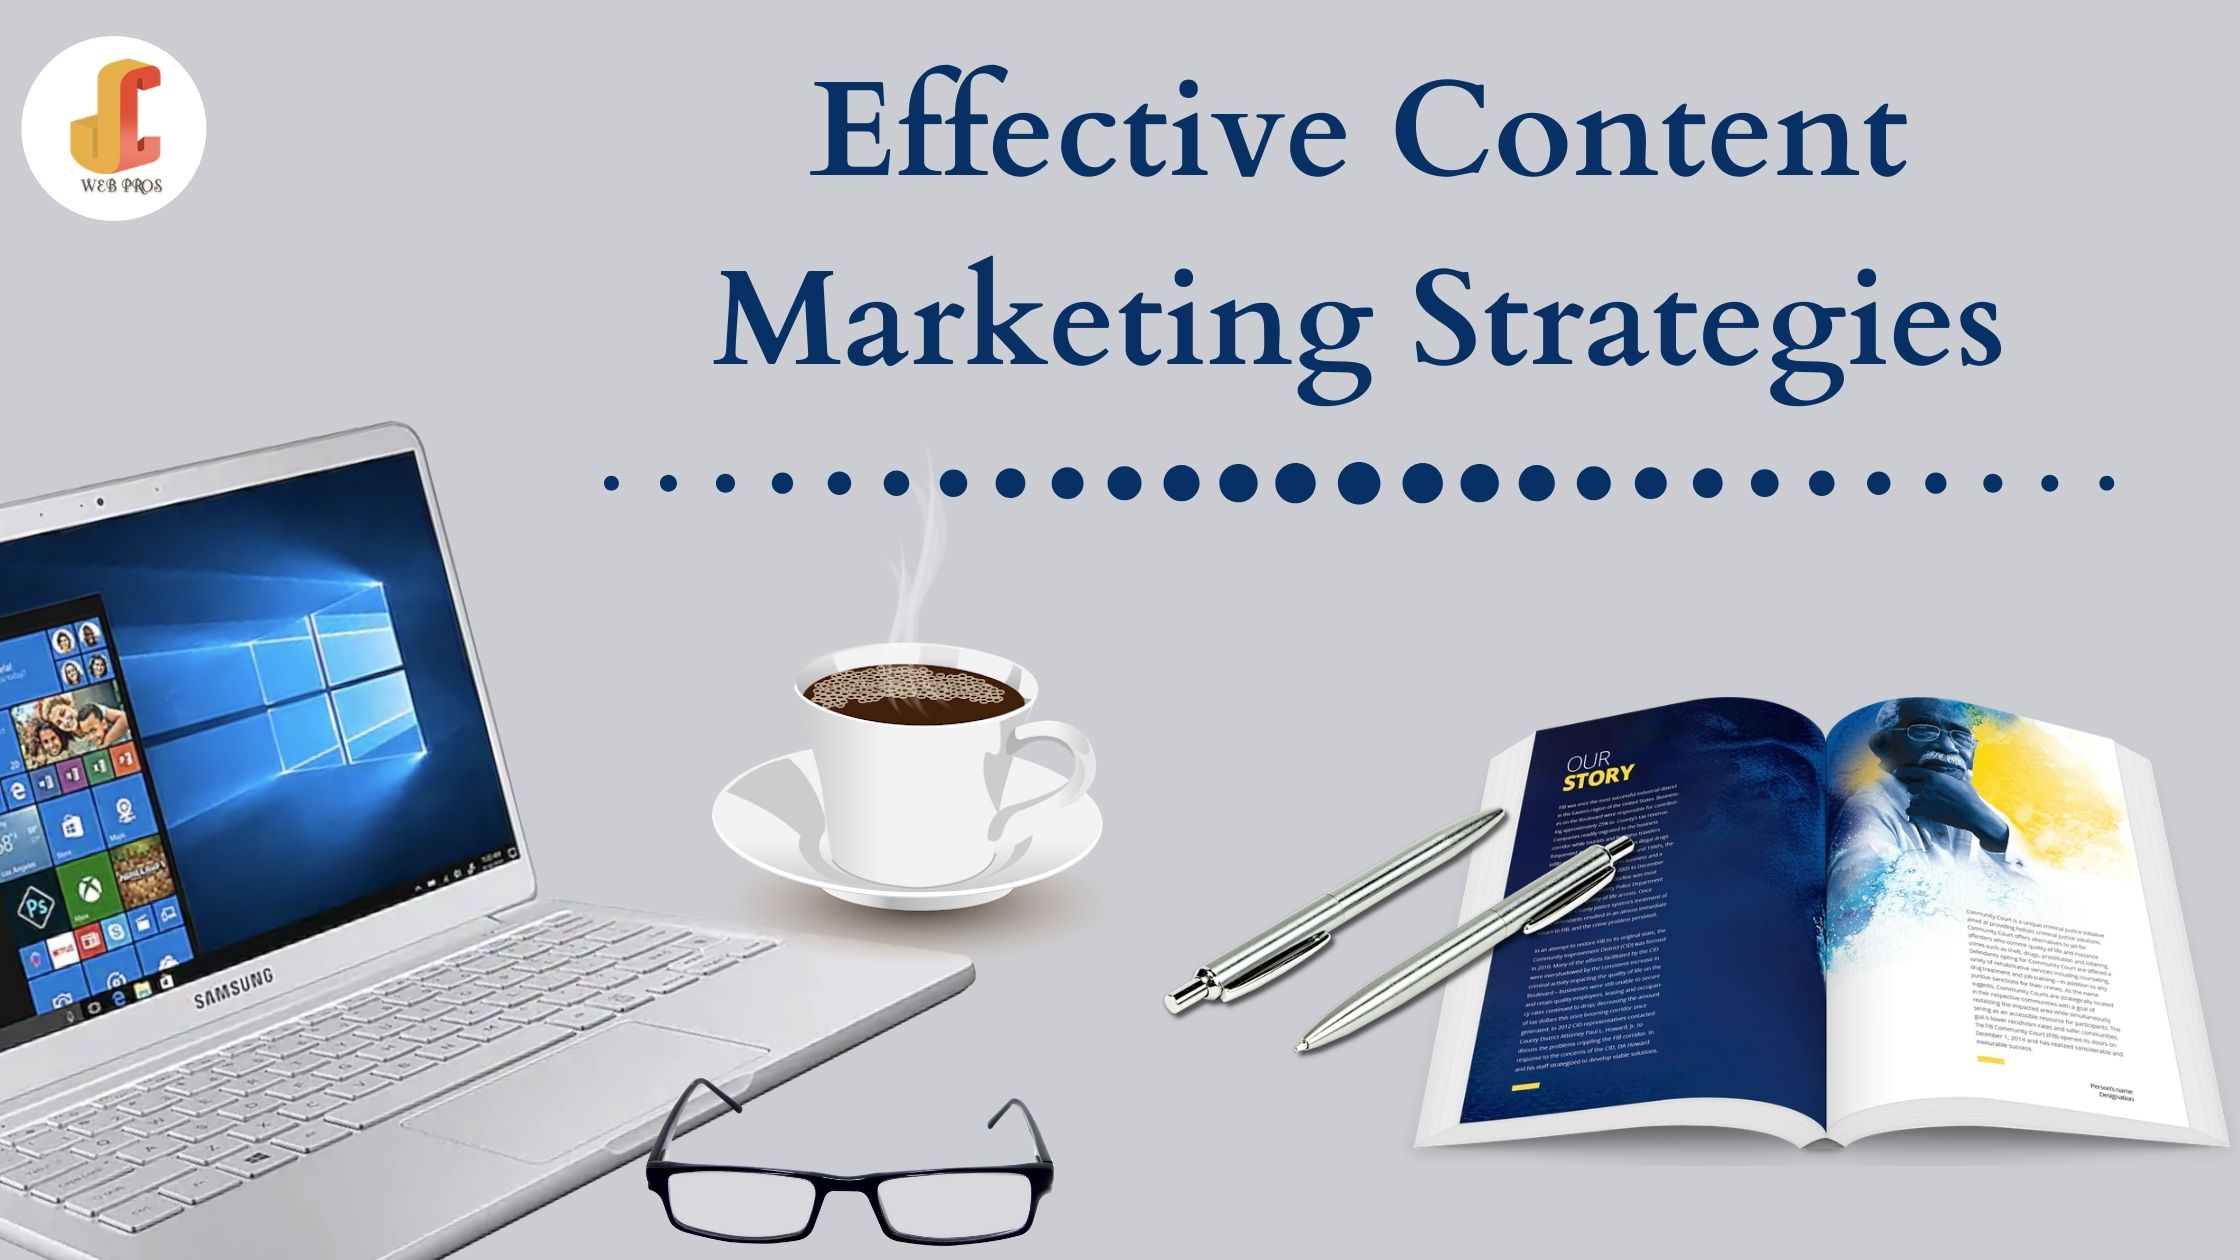 Effective Content Marketing Strategies for Business Growth